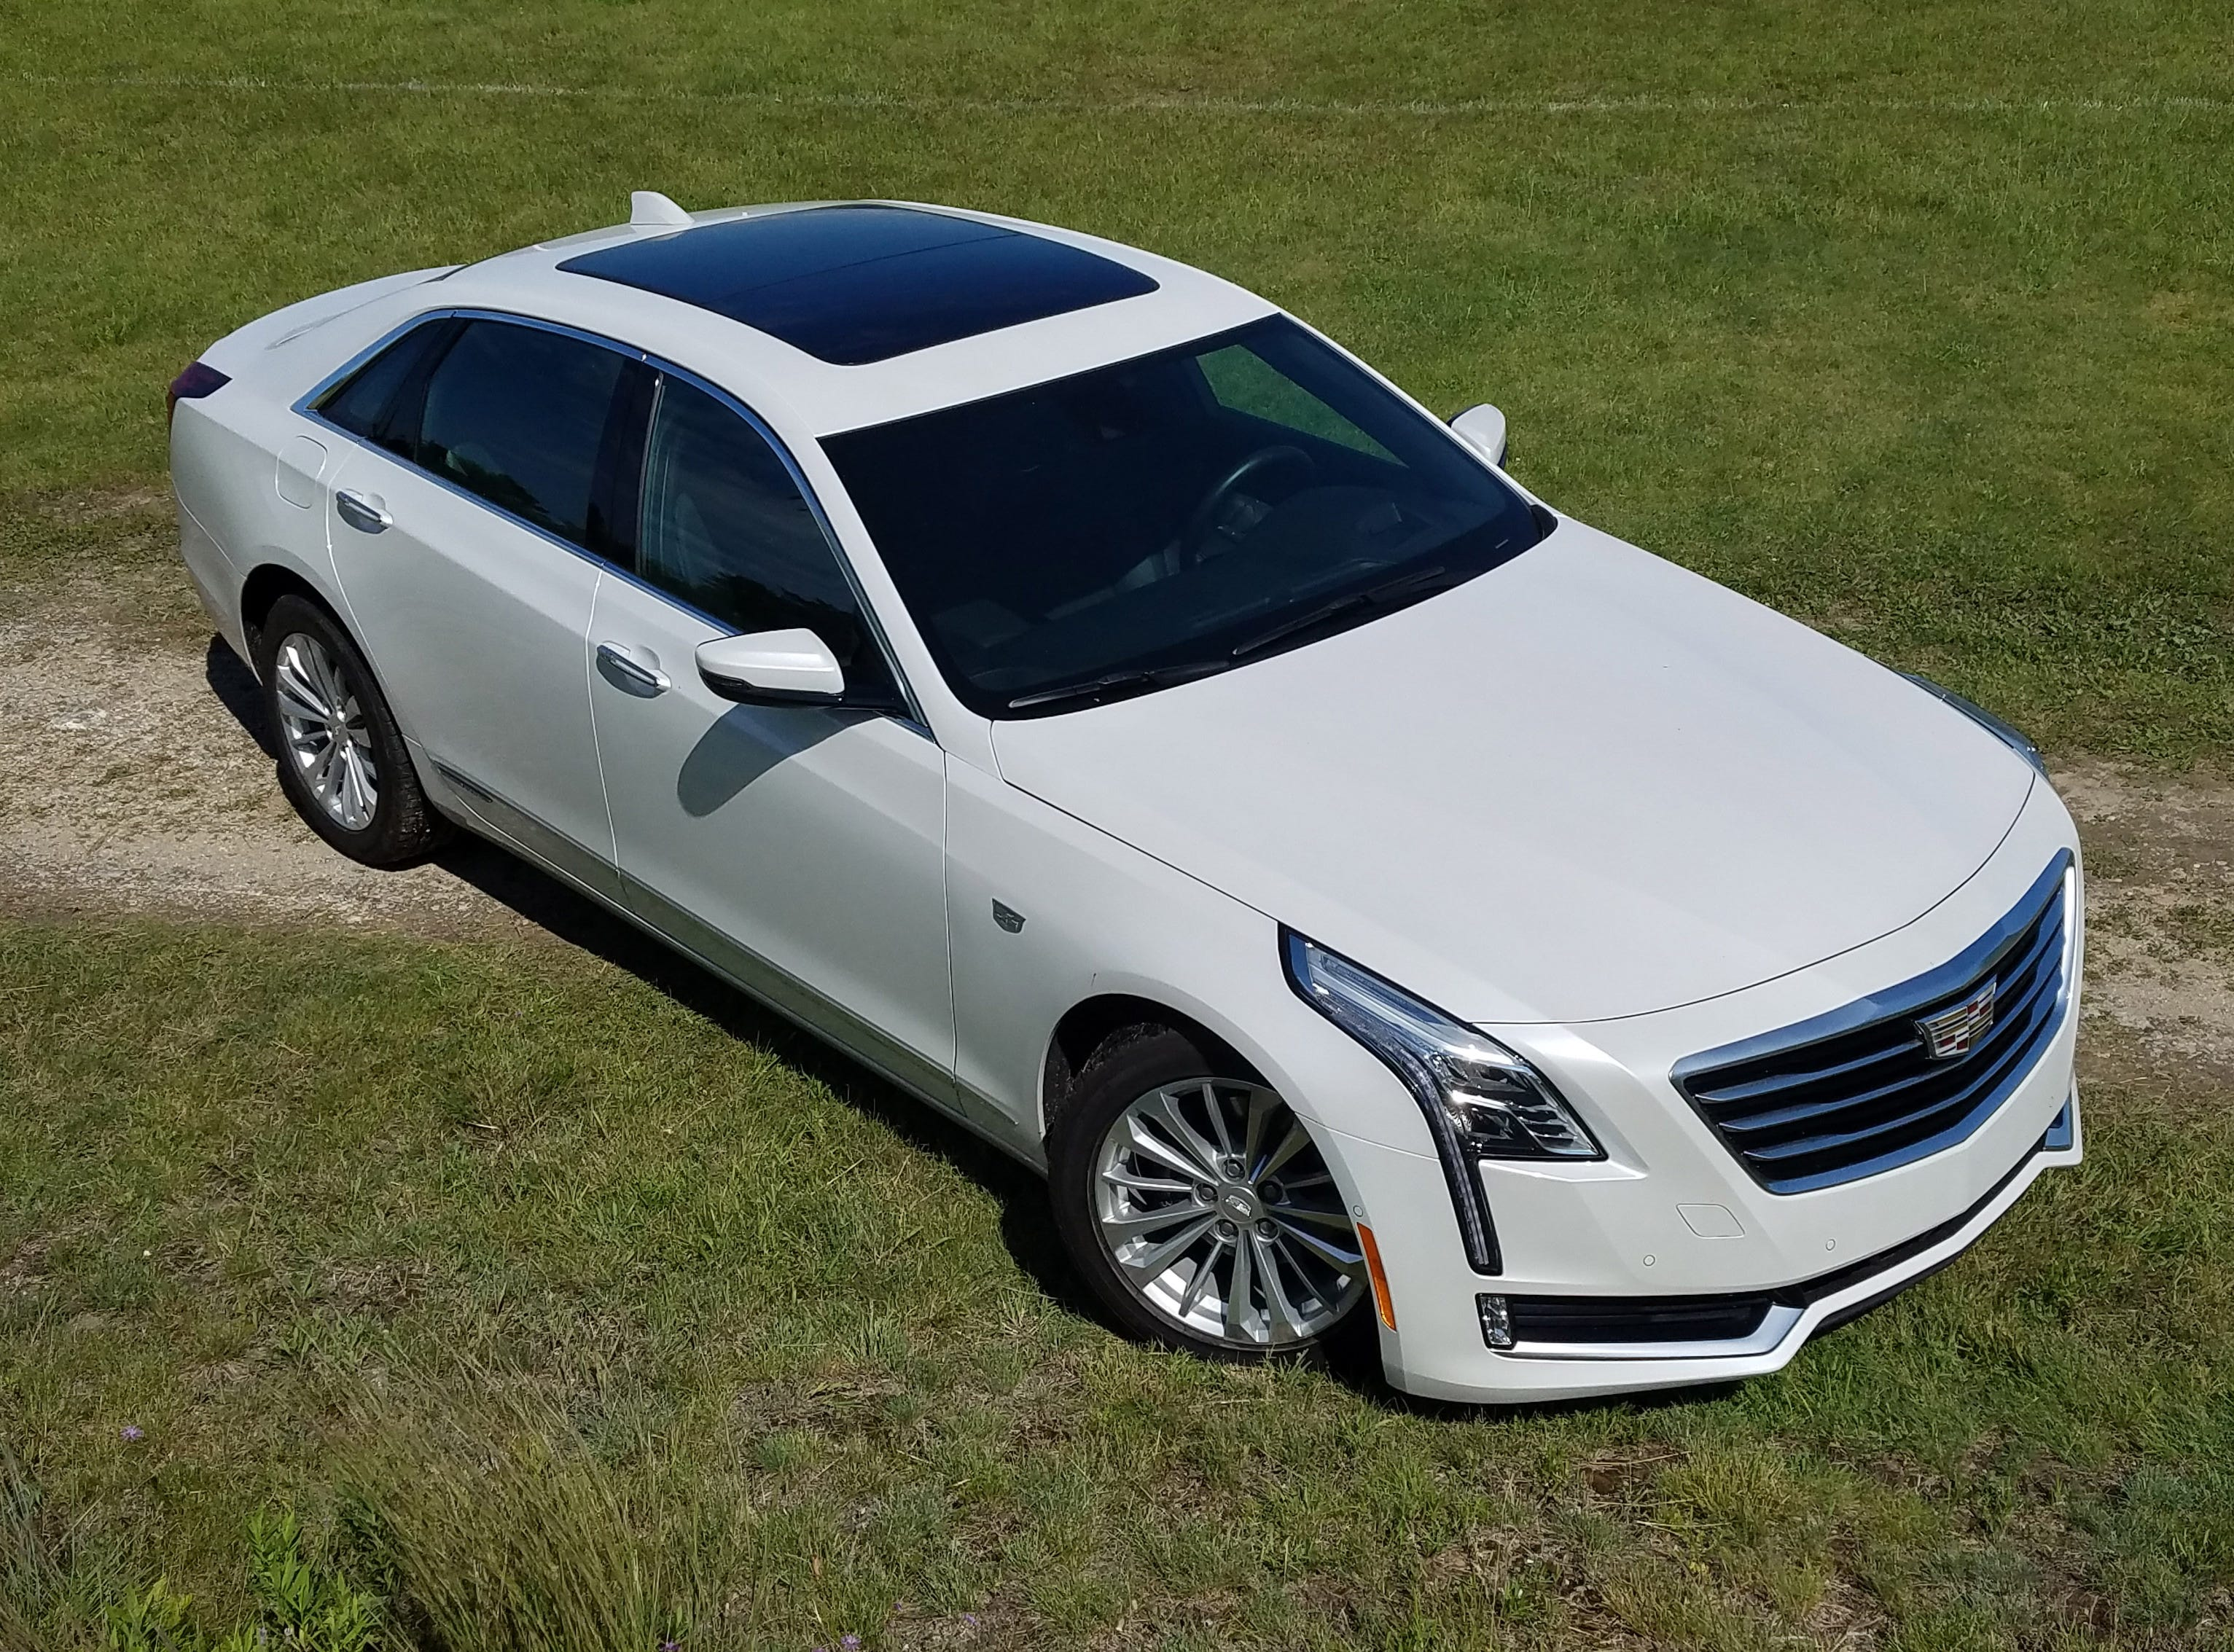 At a single-price $76,090 the 2017 Cadillac CT6 Plug-in is loaded with full sun-roof, safety assist systems, and 31-mile electric-only range.